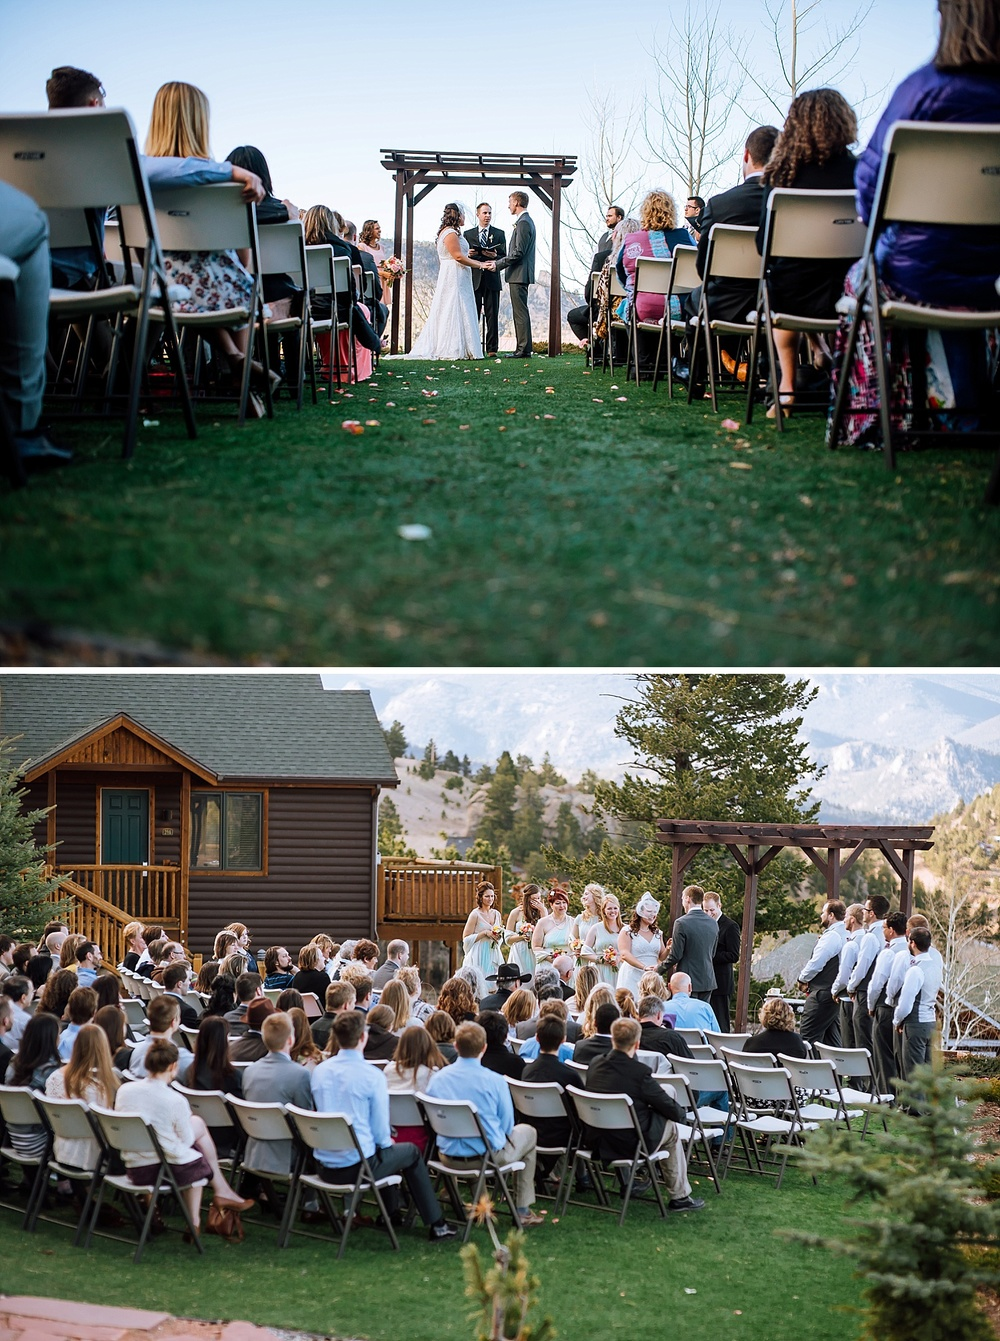 Mary's Lake Lodge is the PERFECT venue for a mountain wedding! I love this! Colorado is so beautiful. Photo by Maddie Mae Photography